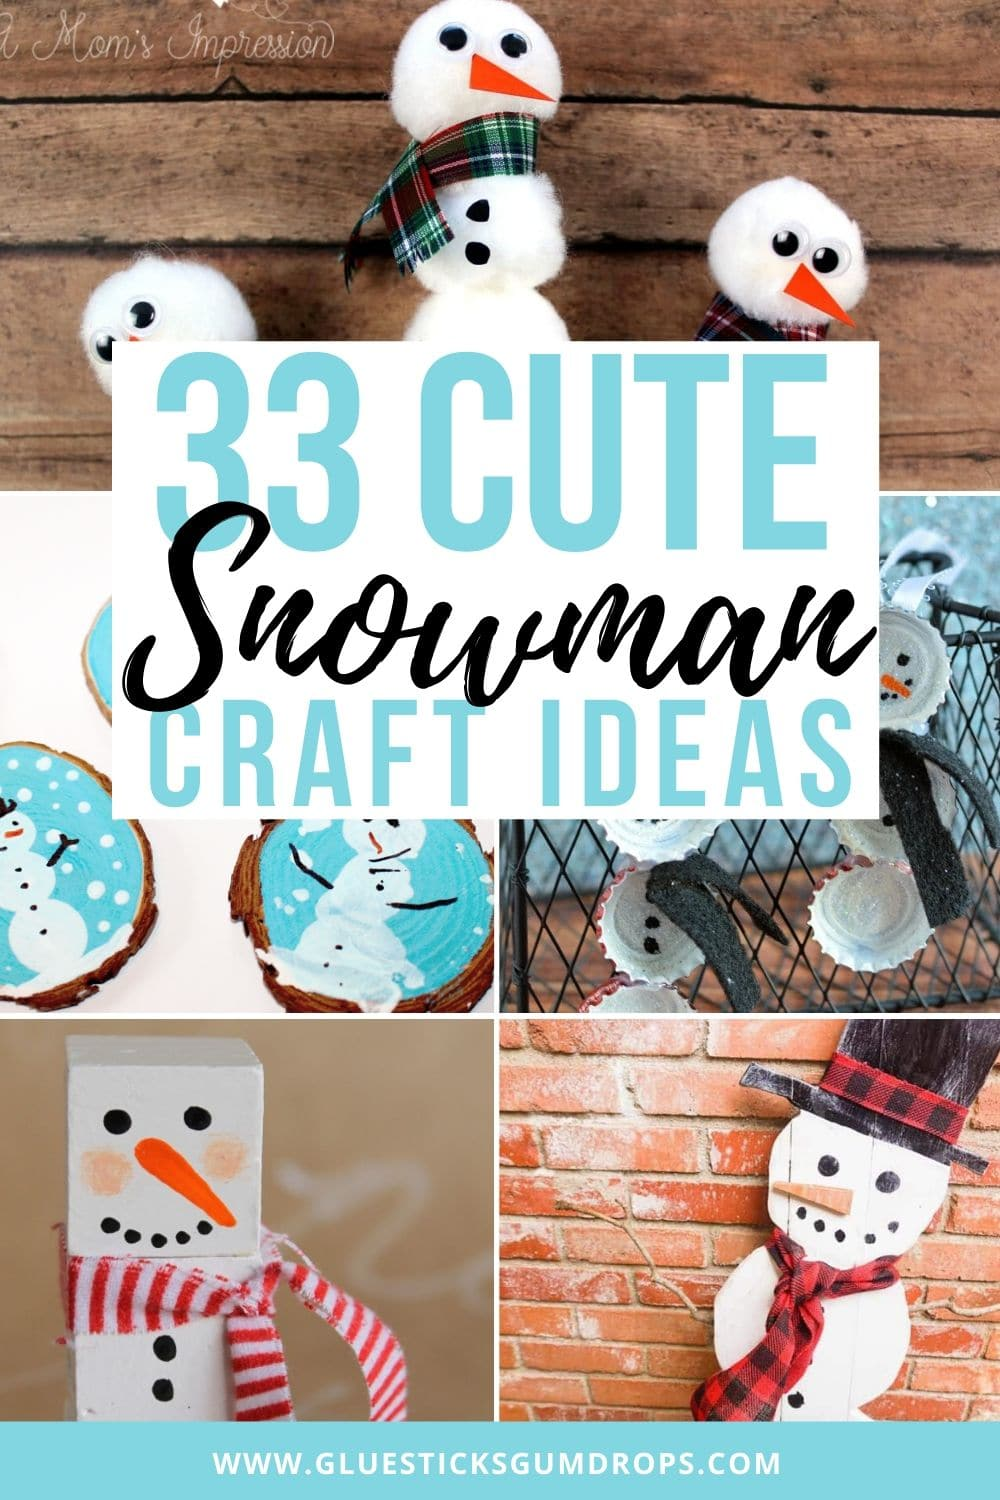 collage of various snowman crafts